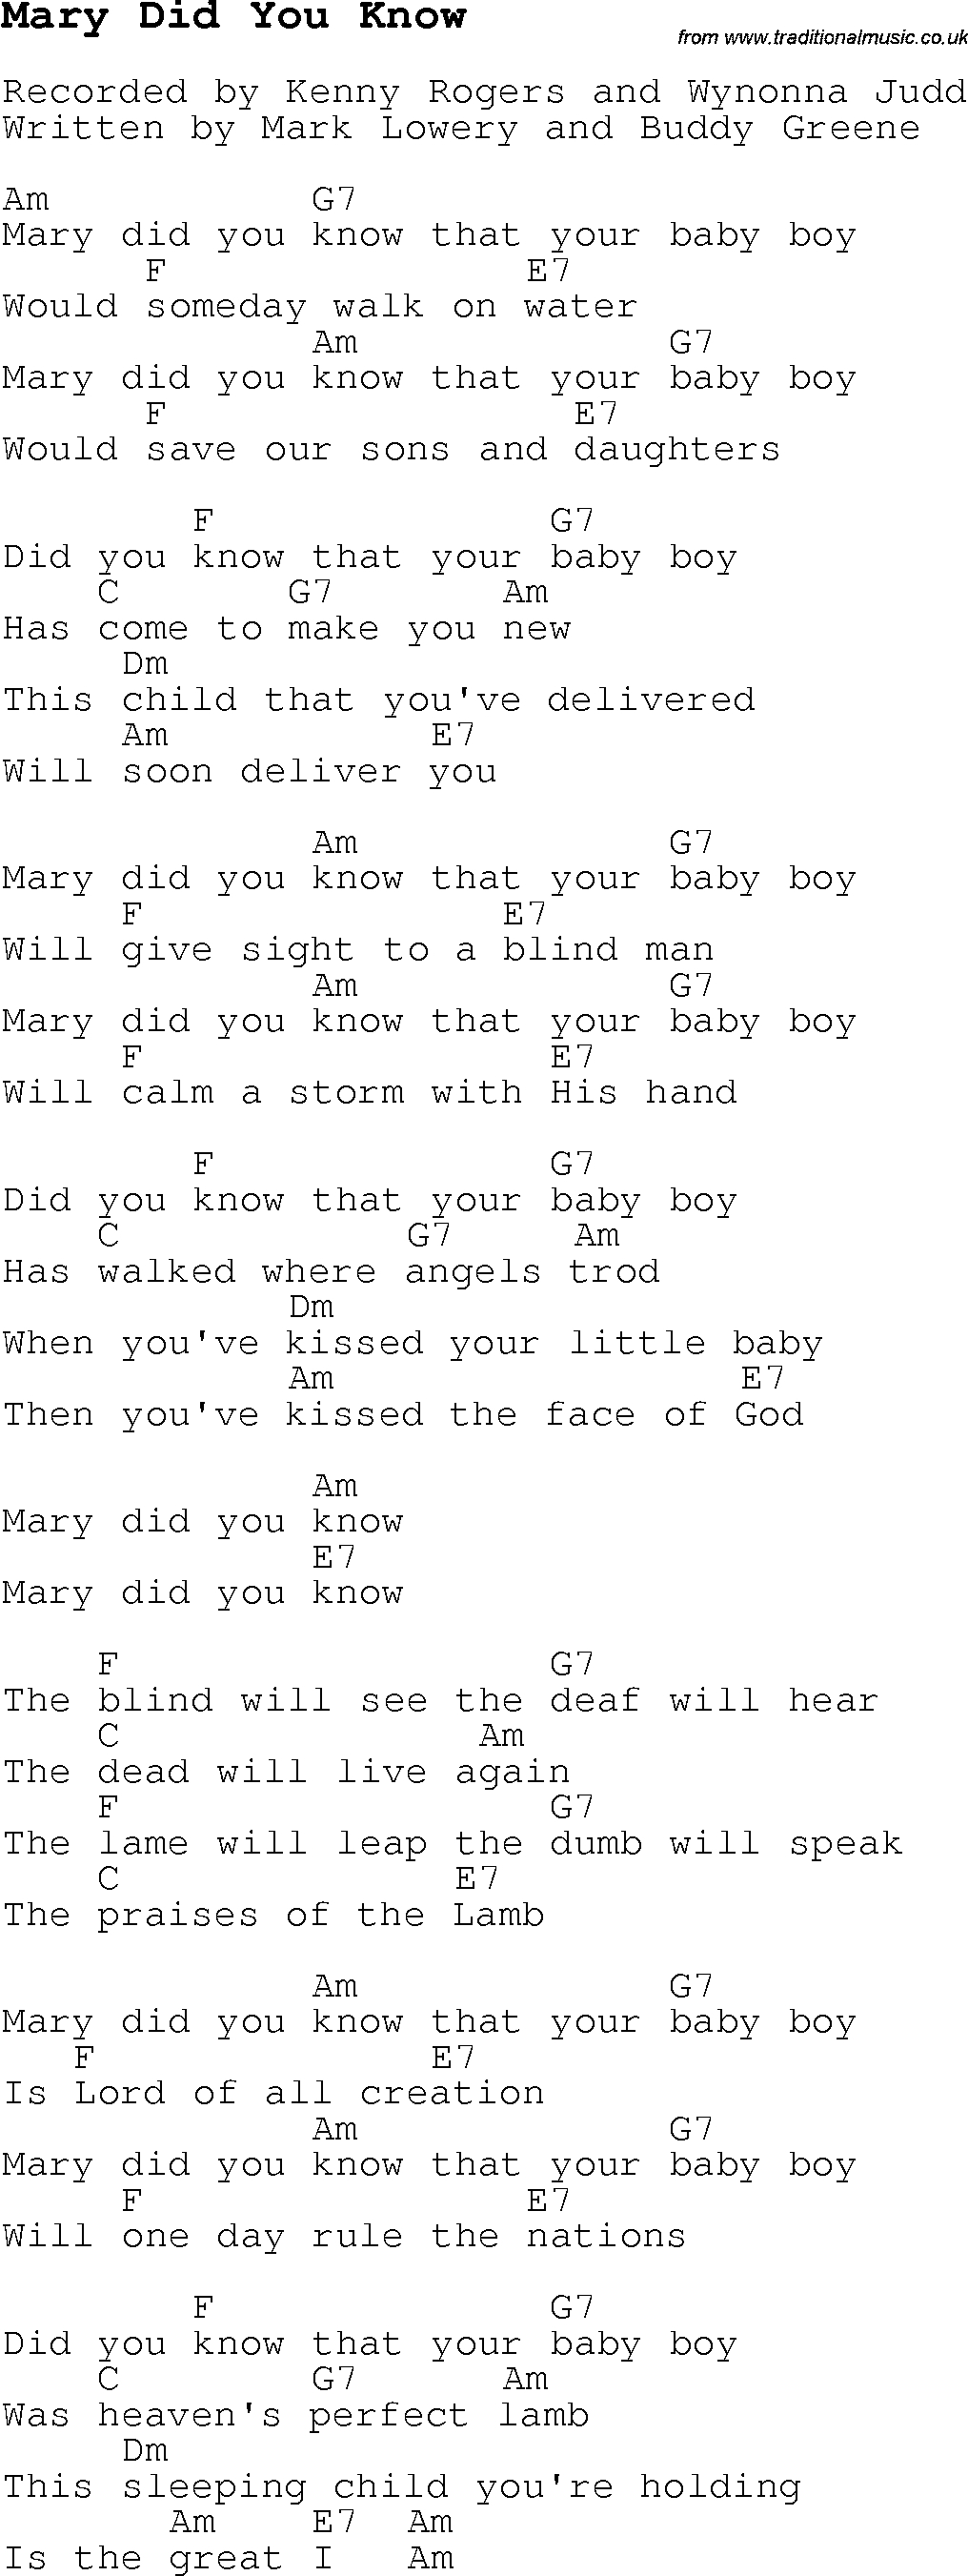 Mary Did You Know Chords Christmas Carolsong Lyrics With Chords For Mary Did You Know